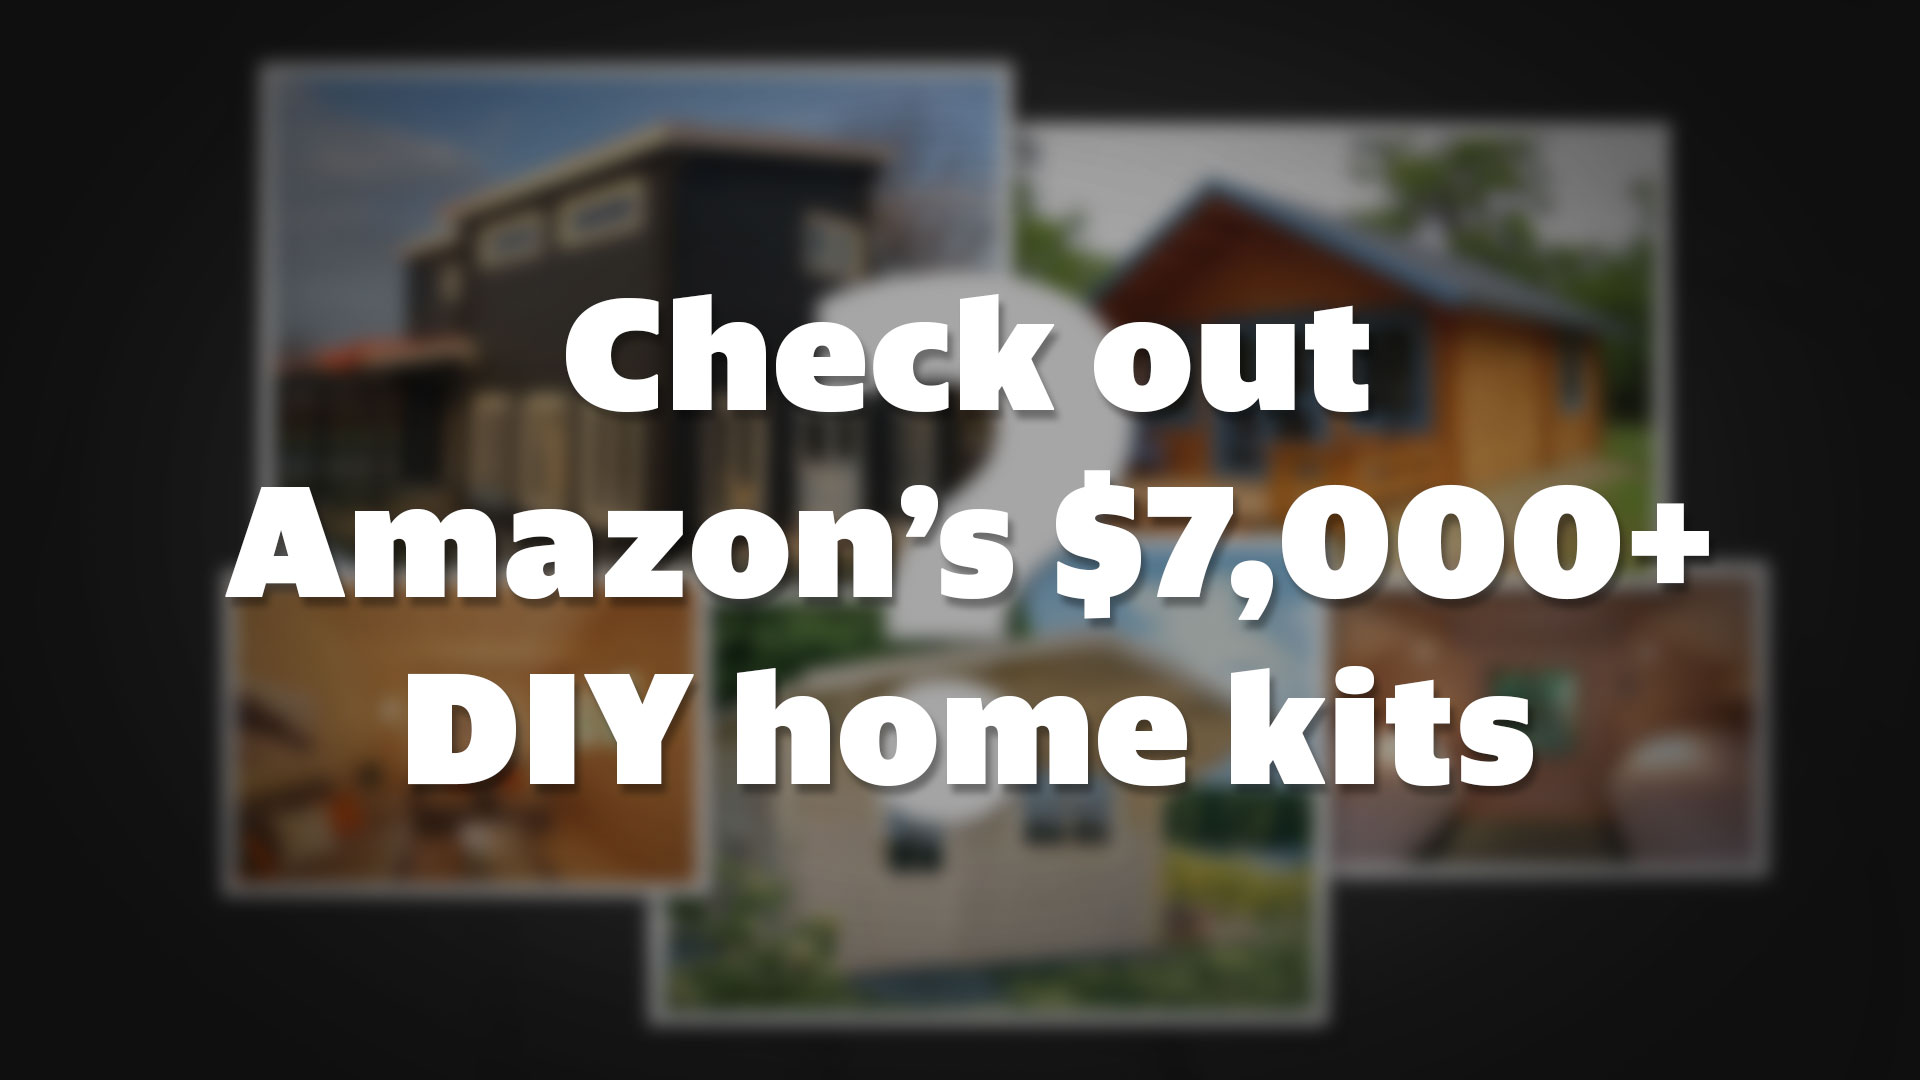 Build-it-yourself house kits are being sold on Amazon